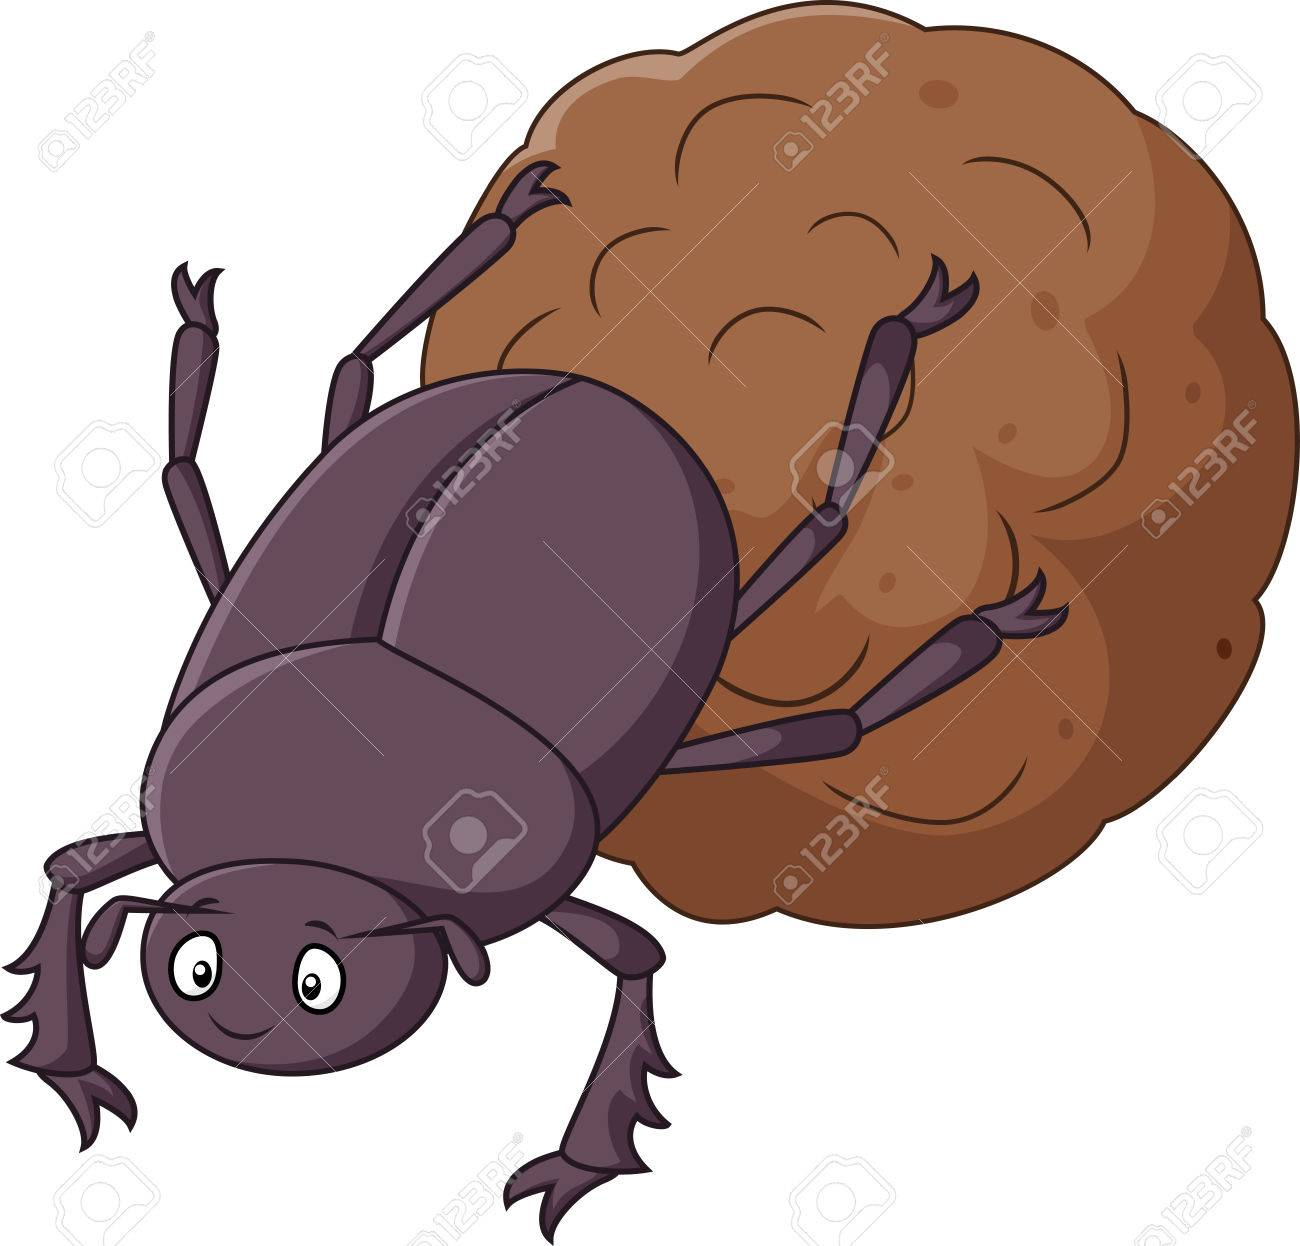 140 Dung Beetle Stock Illustrations Cliparts And Royalty Free Dung